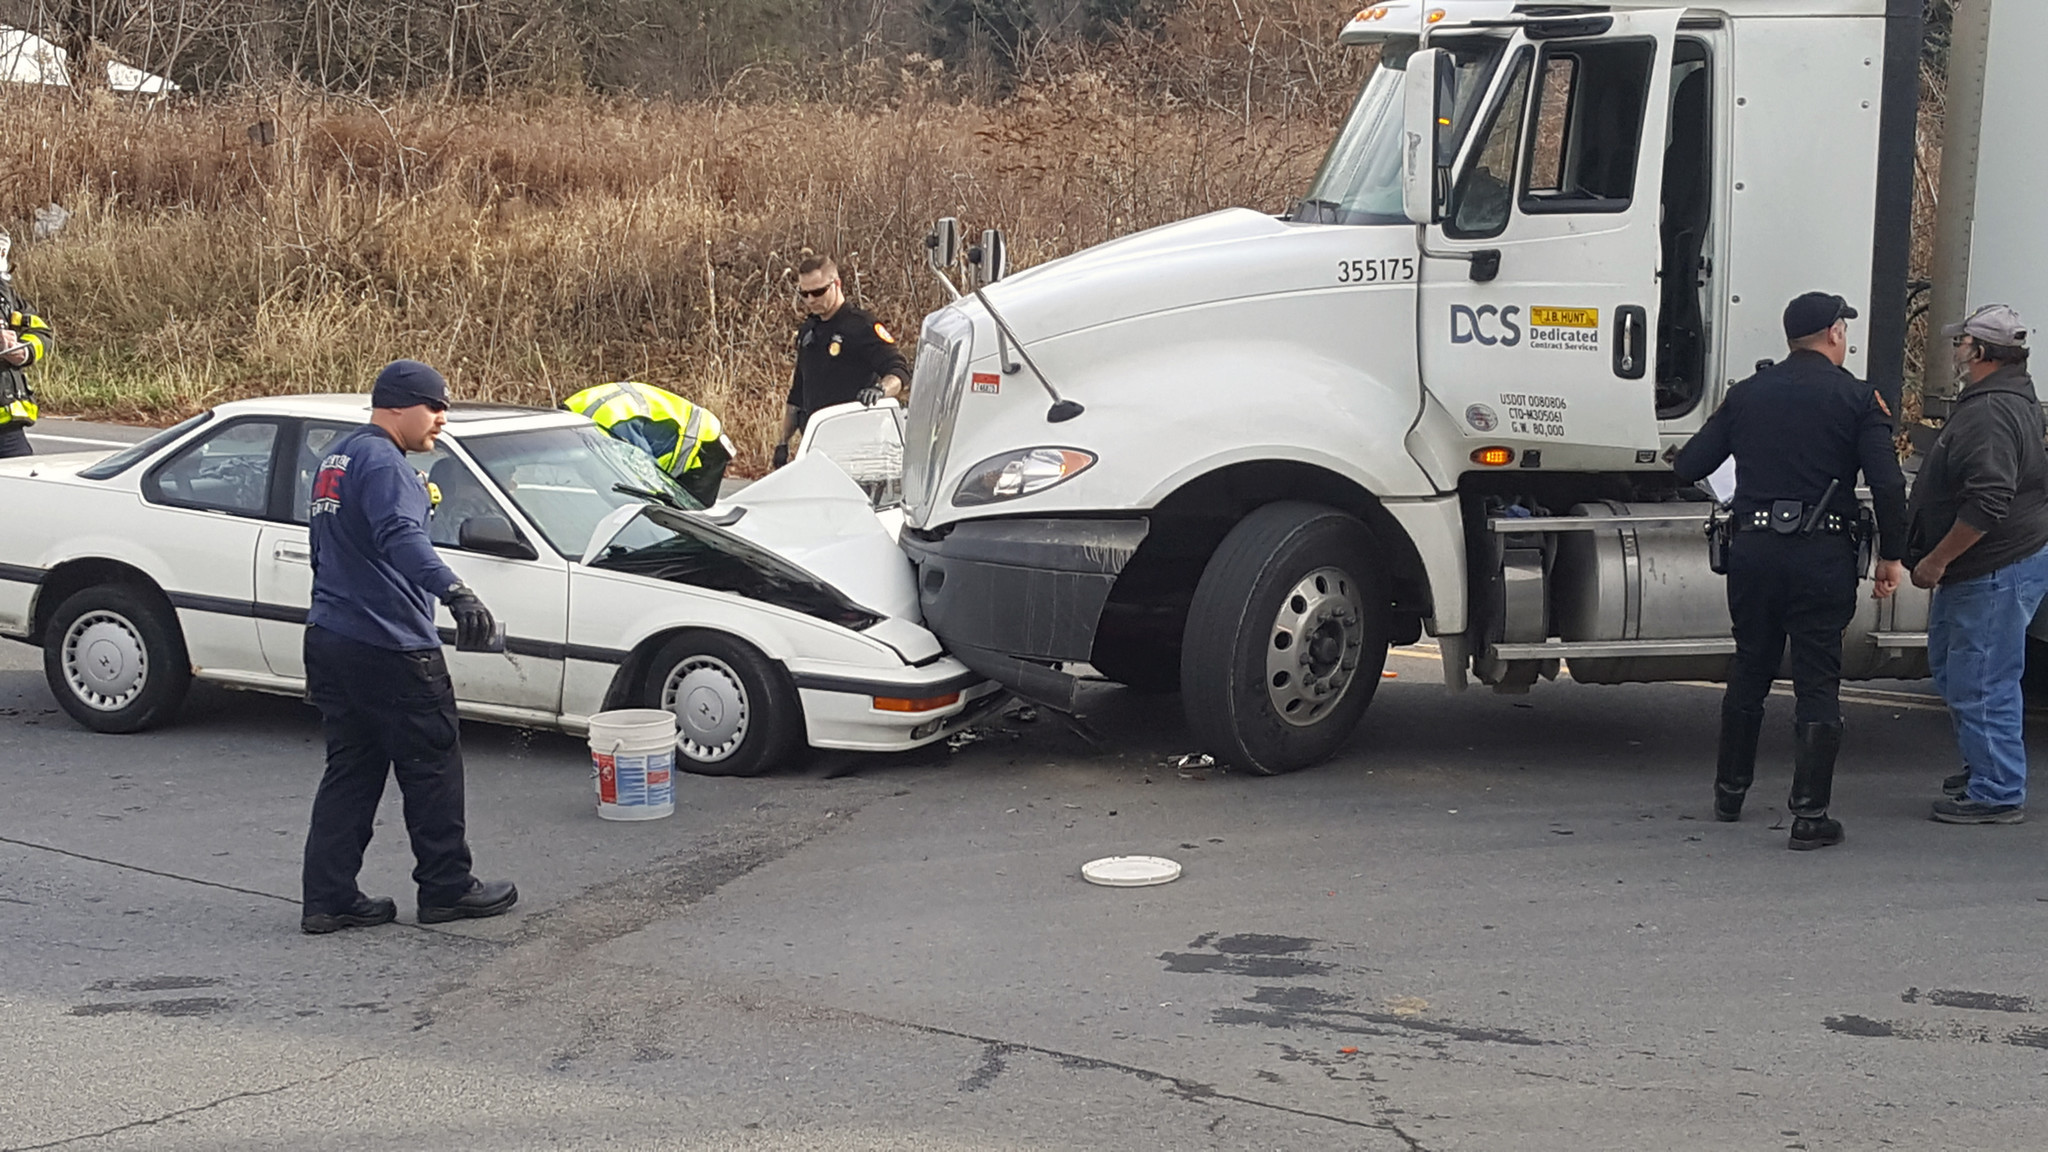 VIDEO: Car Accident in Bethlehem - The Morning Call